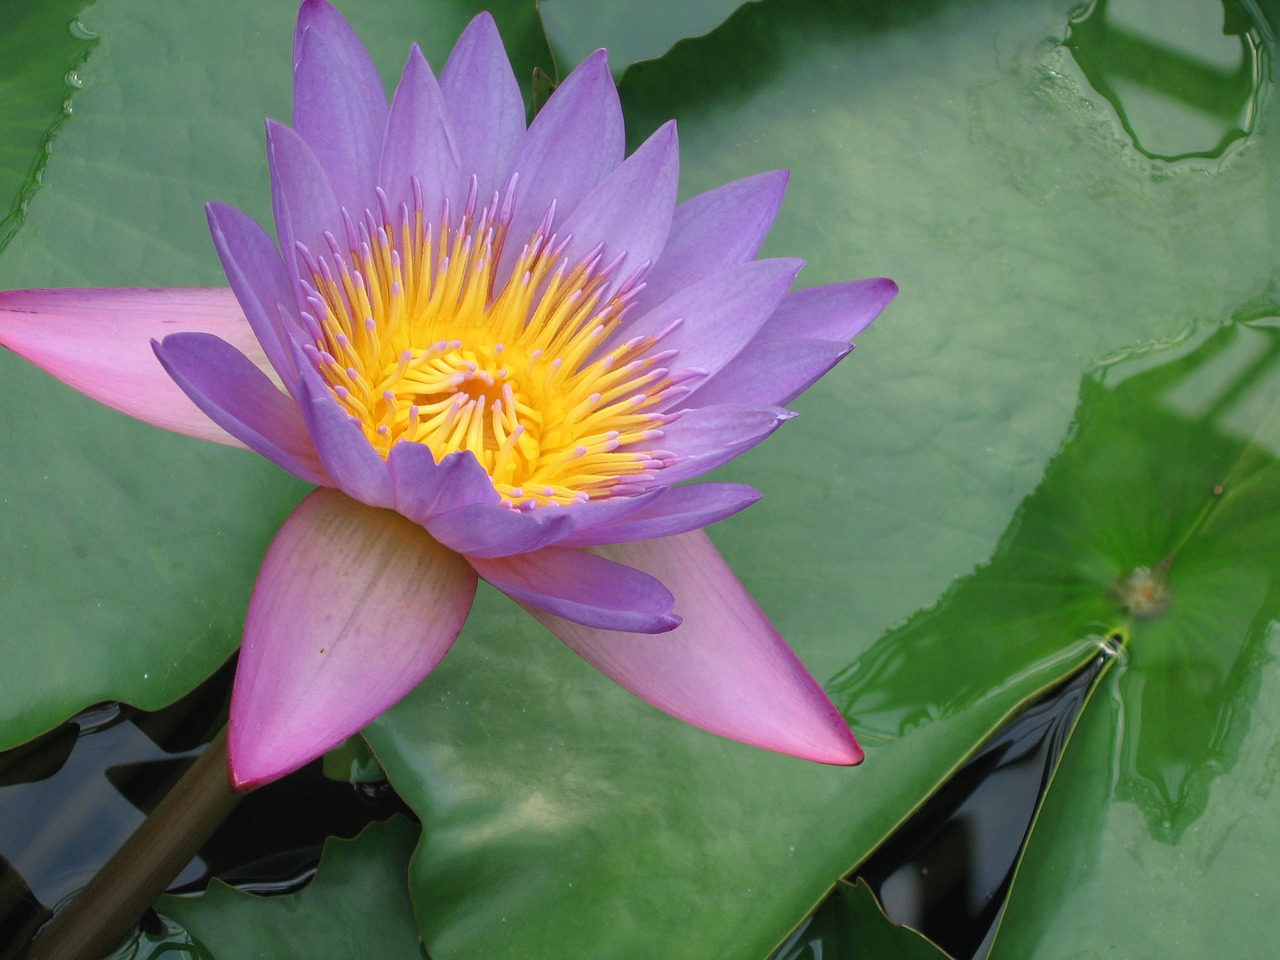 Water Lilylotuslotus Blossomflowerblossom Free Photo From